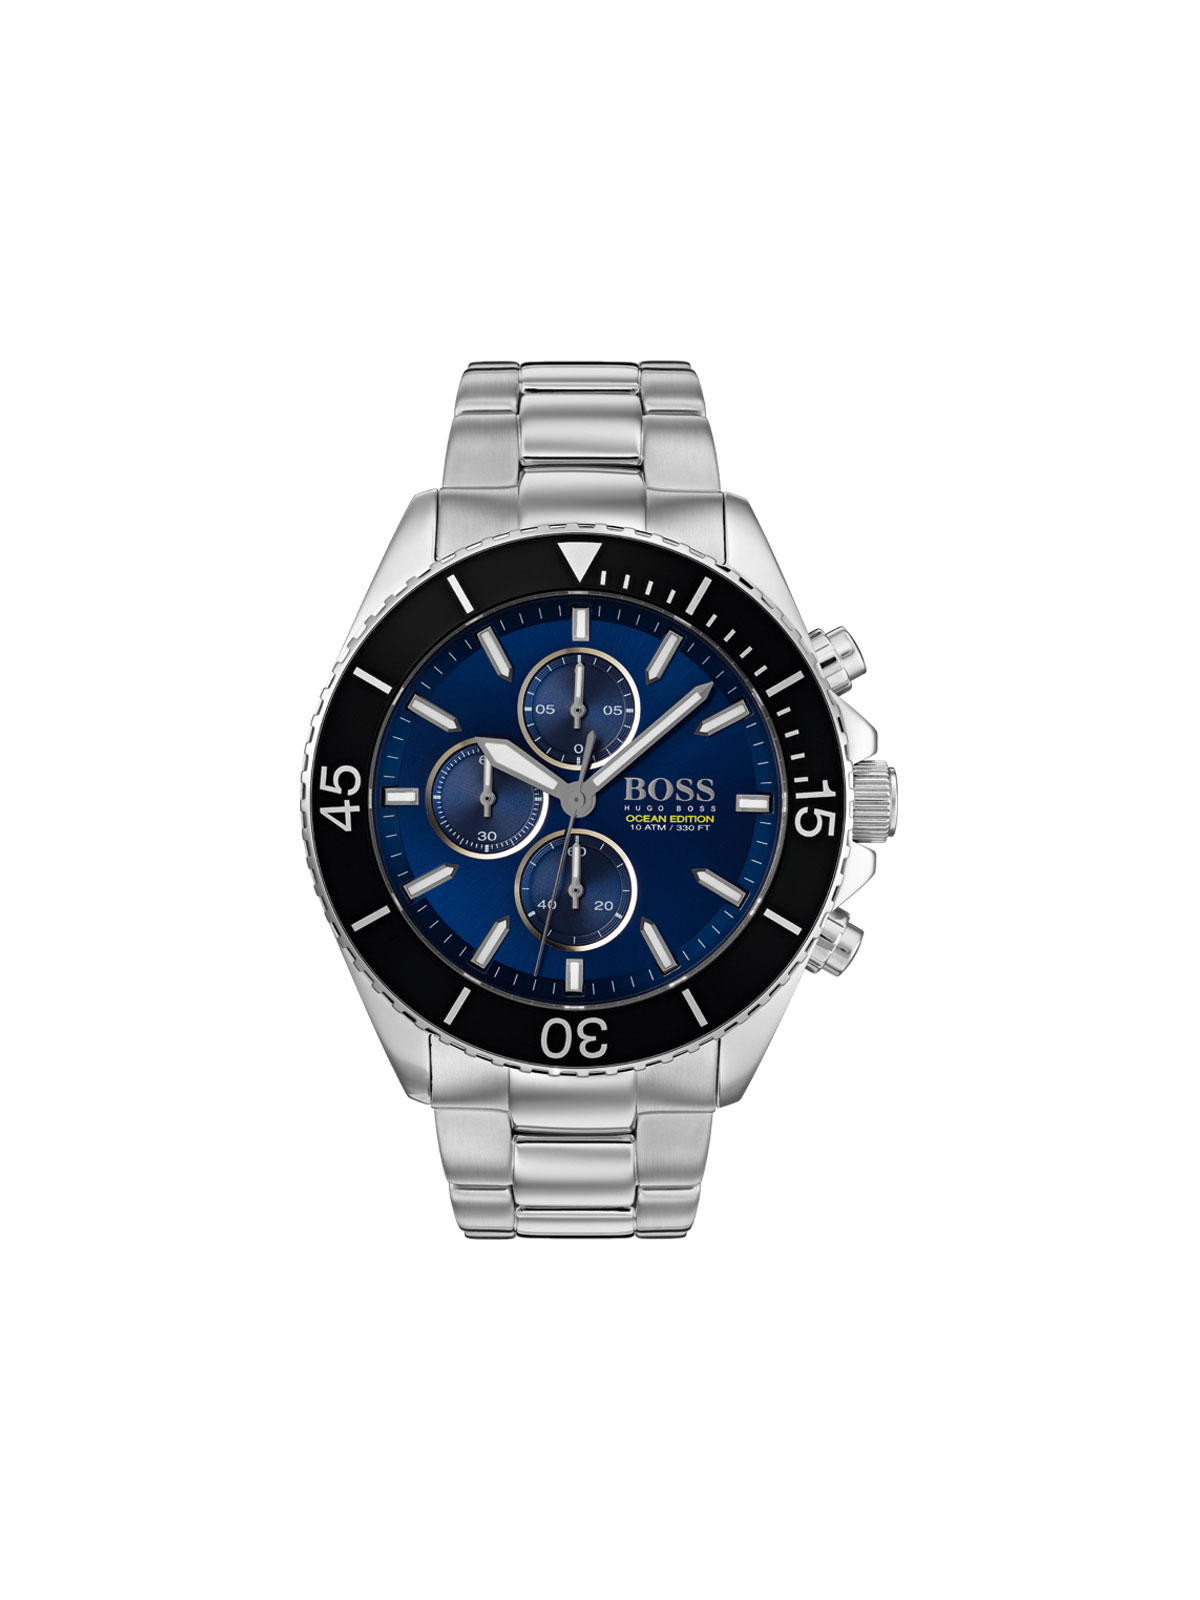 OCEAN EDITION CHRONO